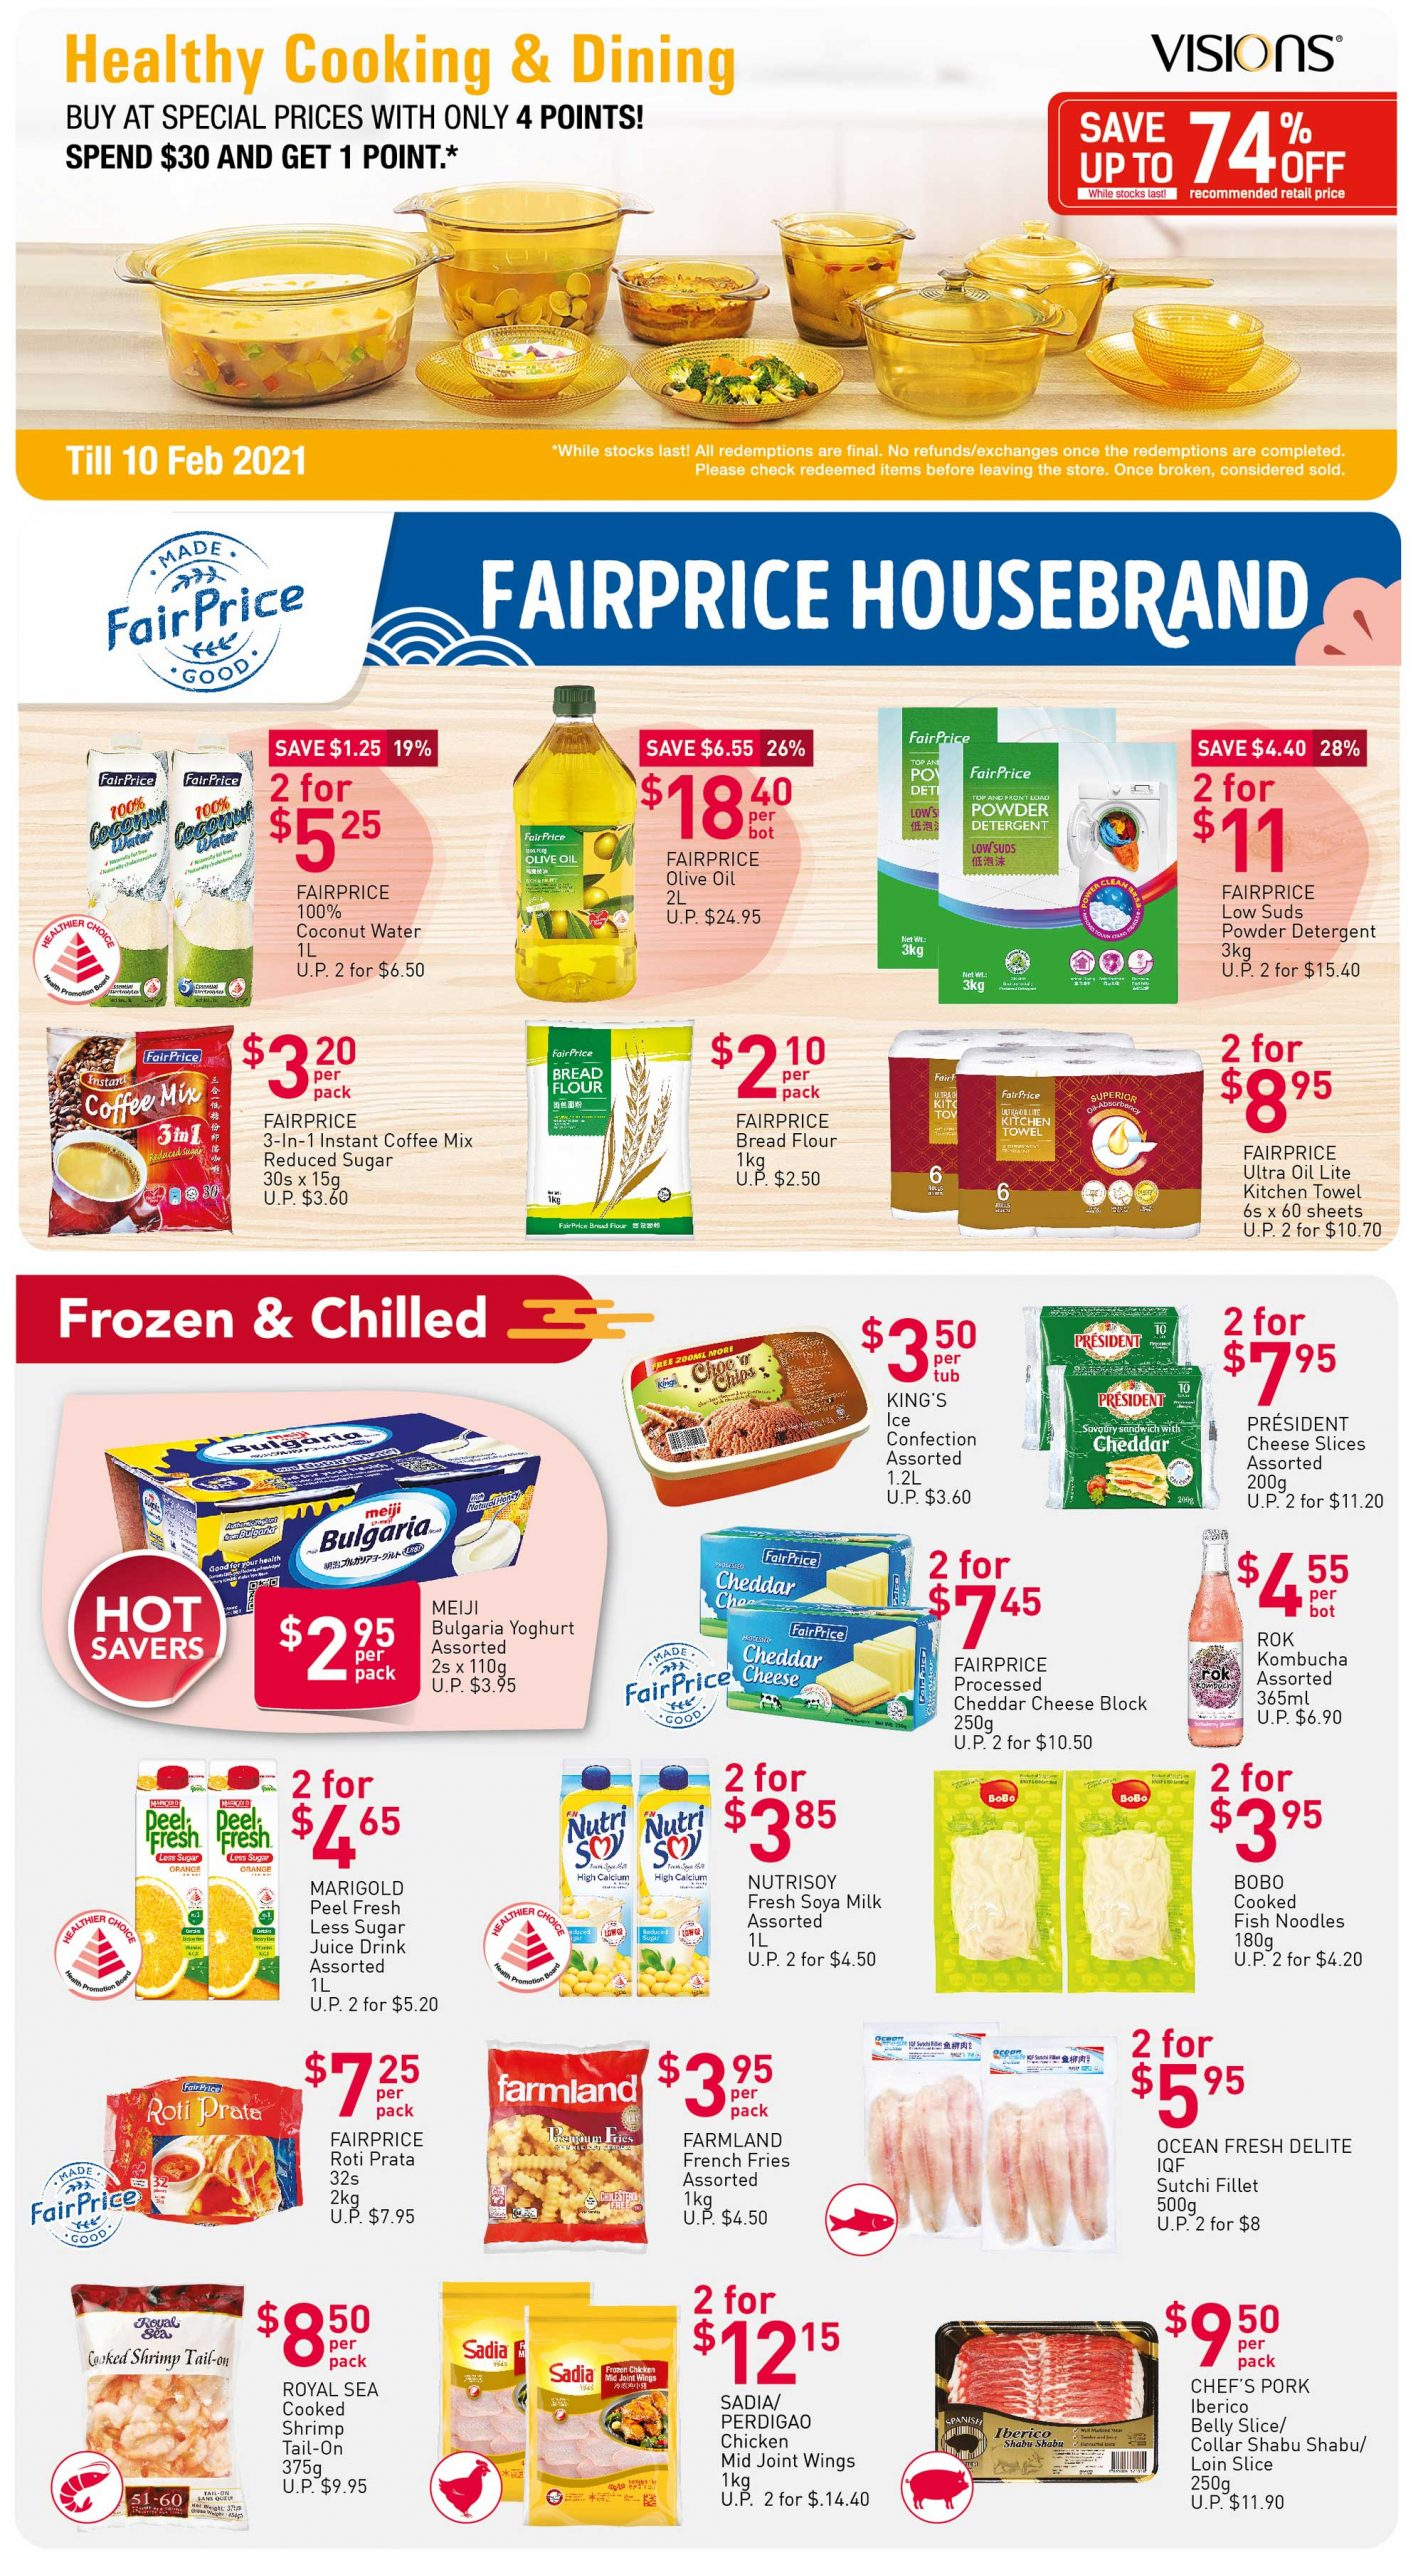 FairPrice's weekly saver deals till 13 January 2021